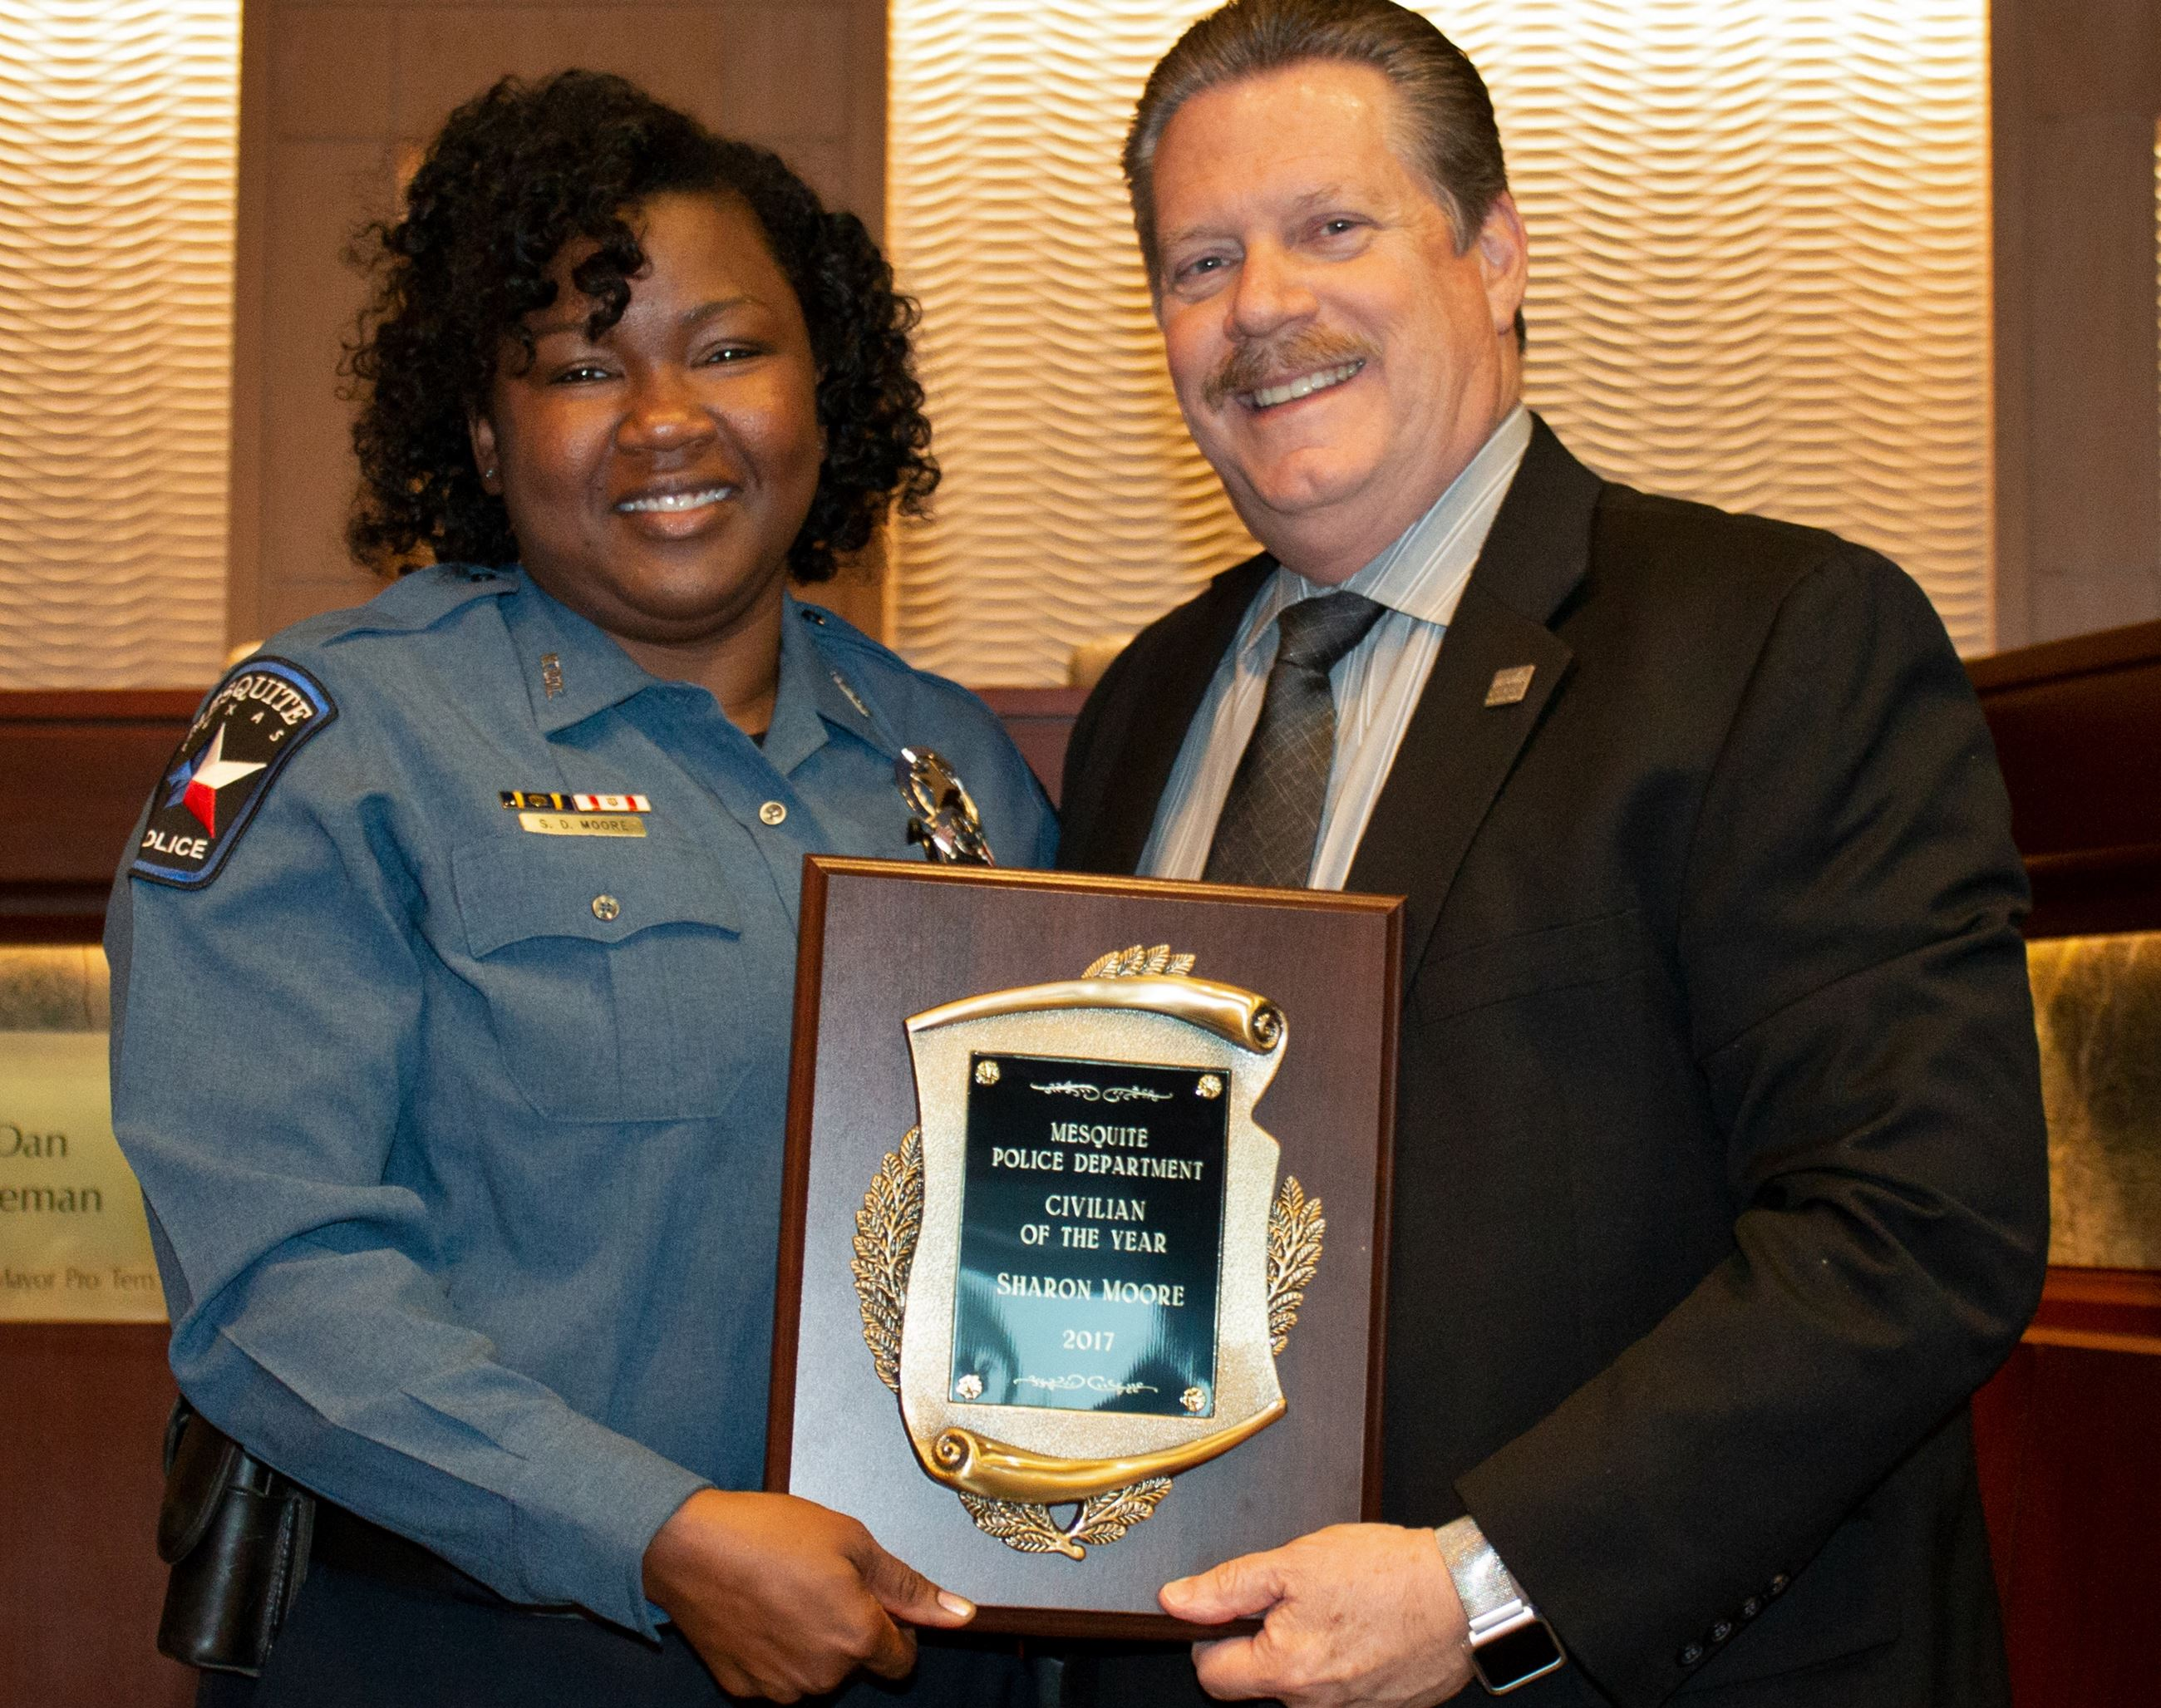 4-16-18 PD Awards - Civilian of the Year - Sharon Moore (2938x2322)